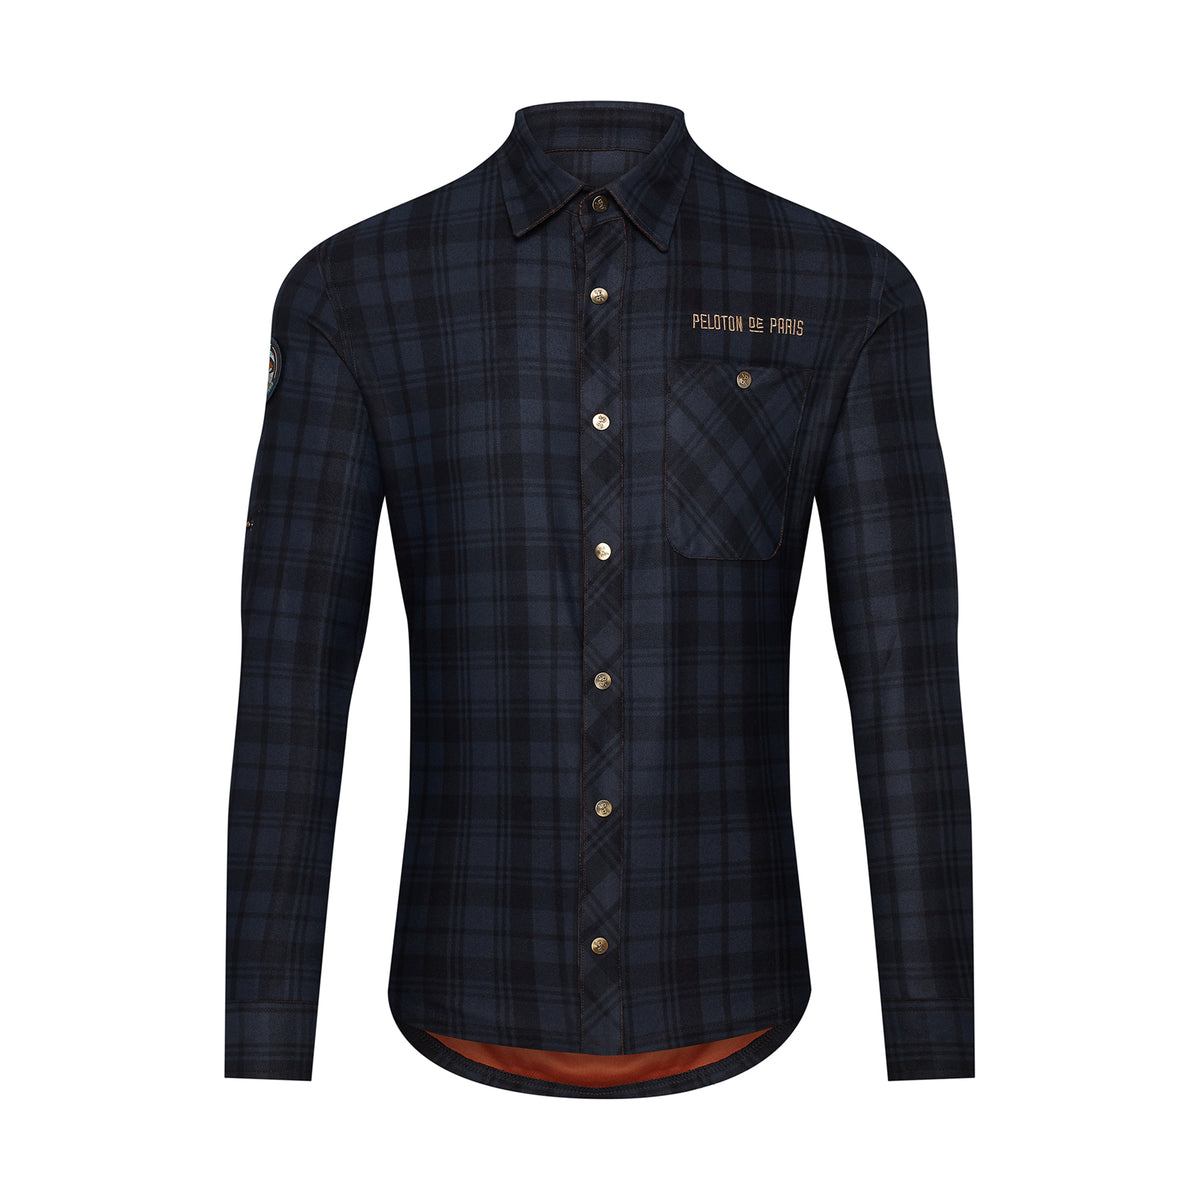 Atlas Gravel Shirt Grey